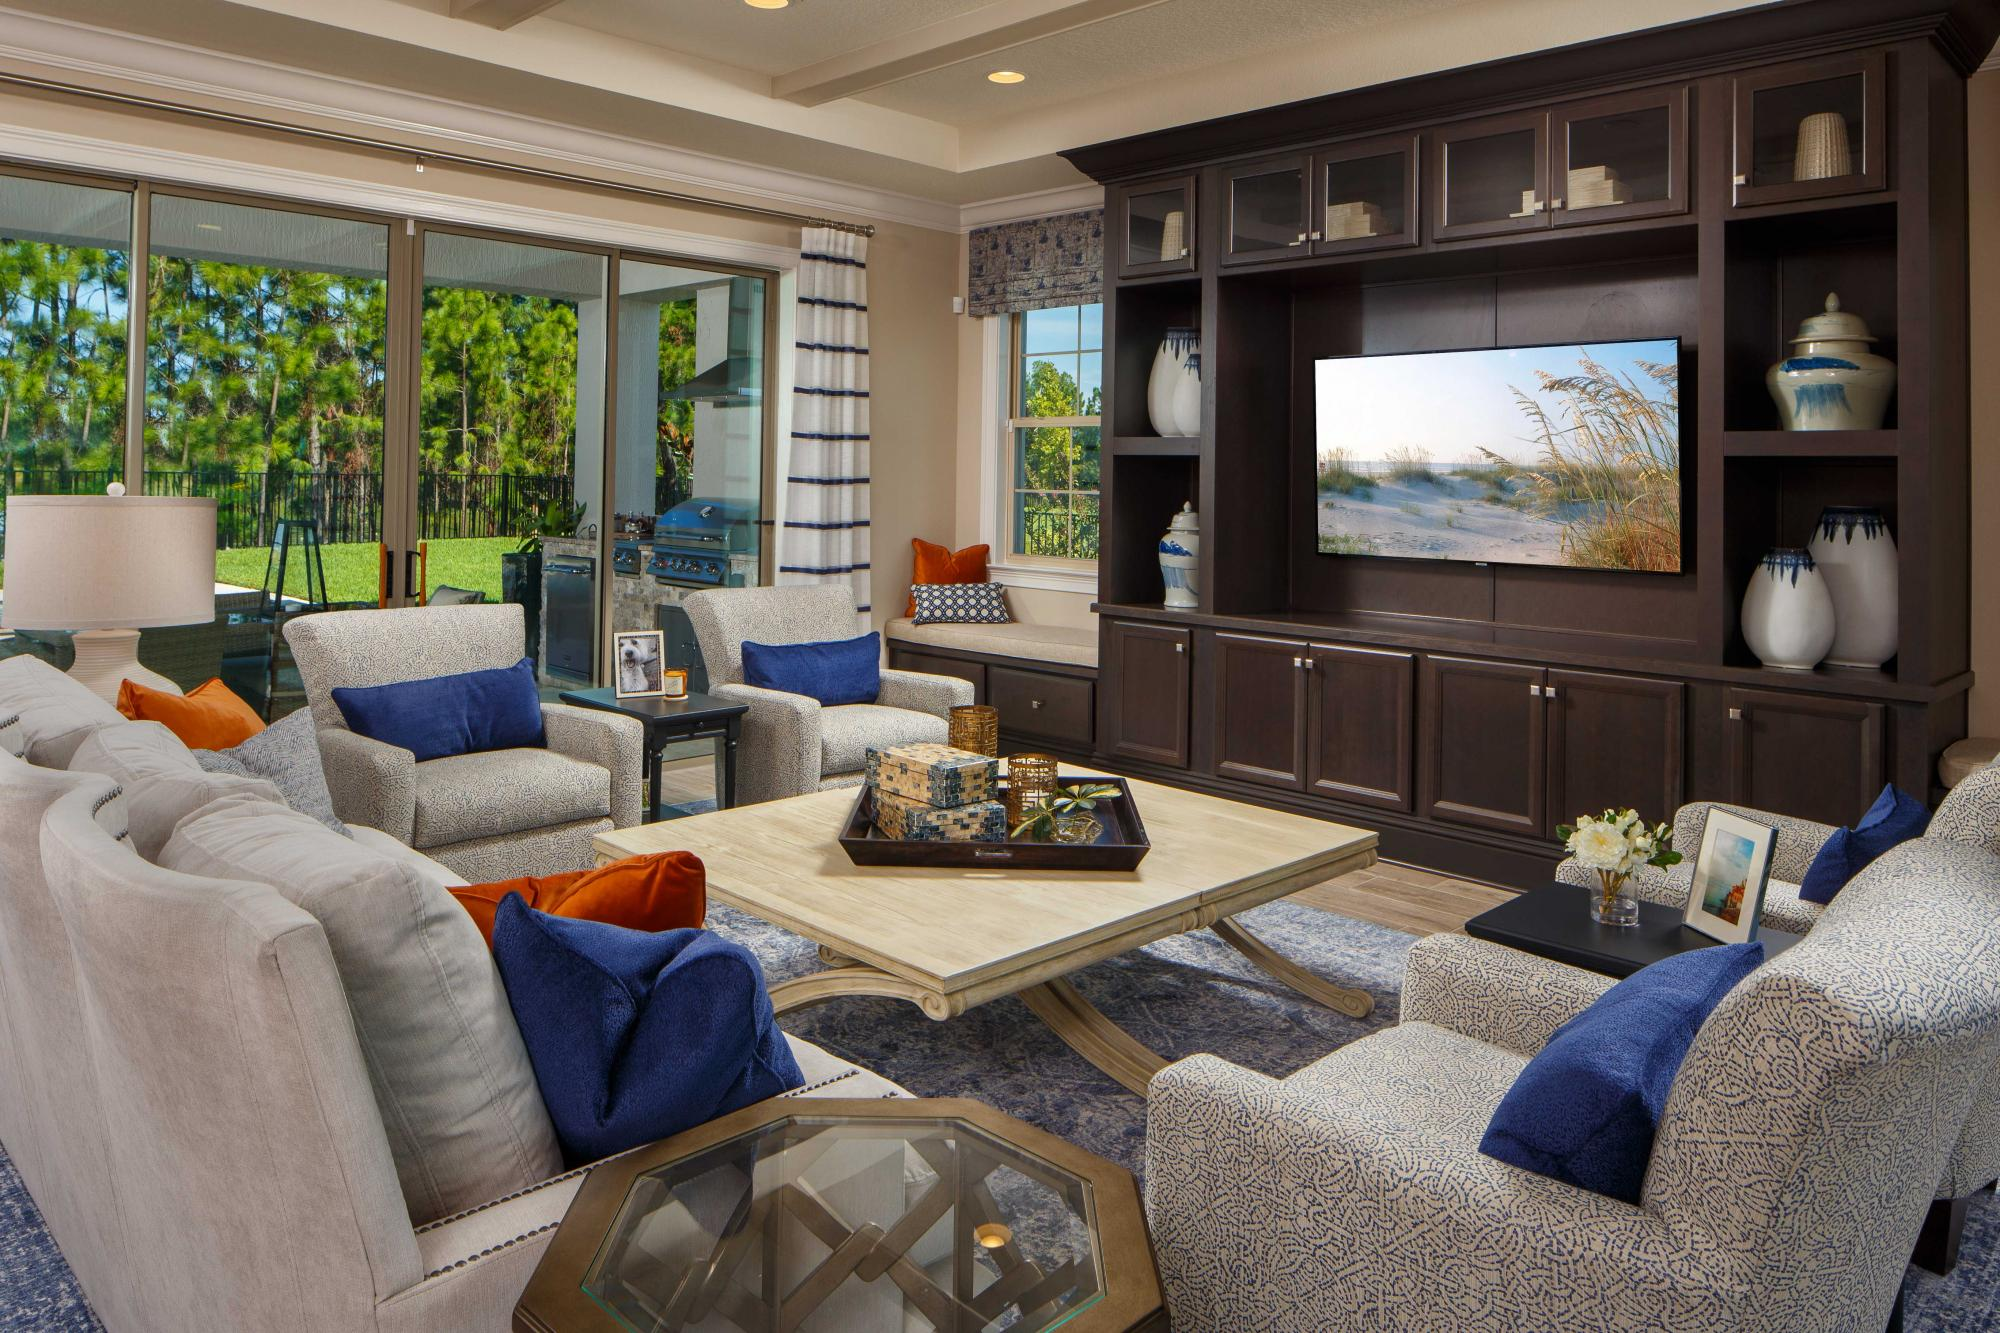 330953574739396_avalon_cove_living_room_